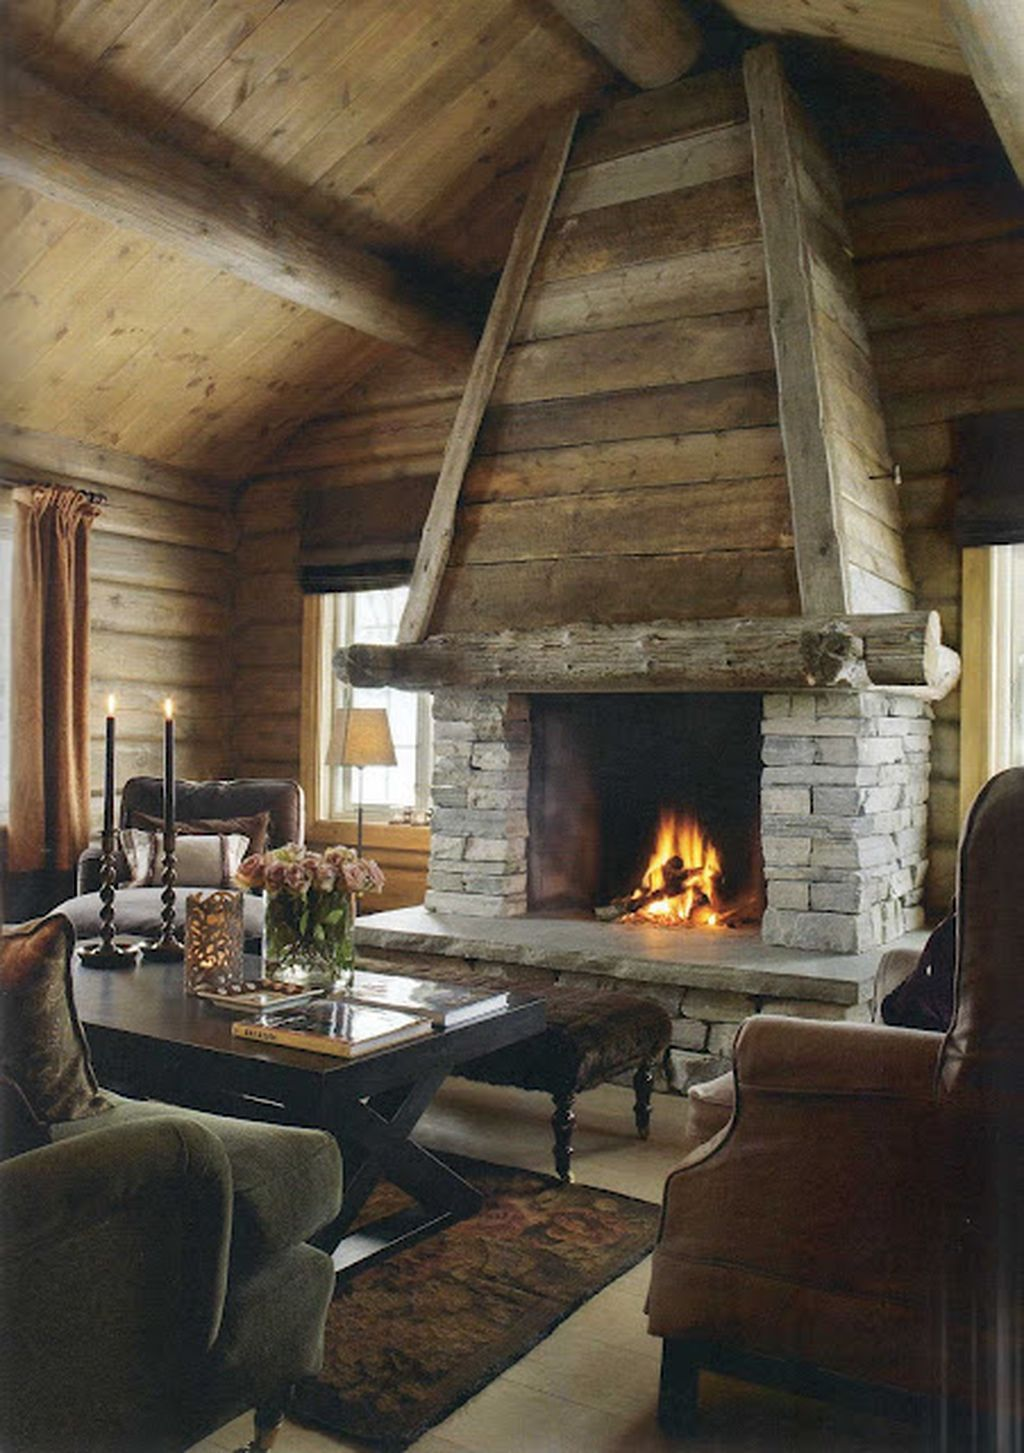 Inspiring Rustic Christmas Fireplace Ideas To Makes Your